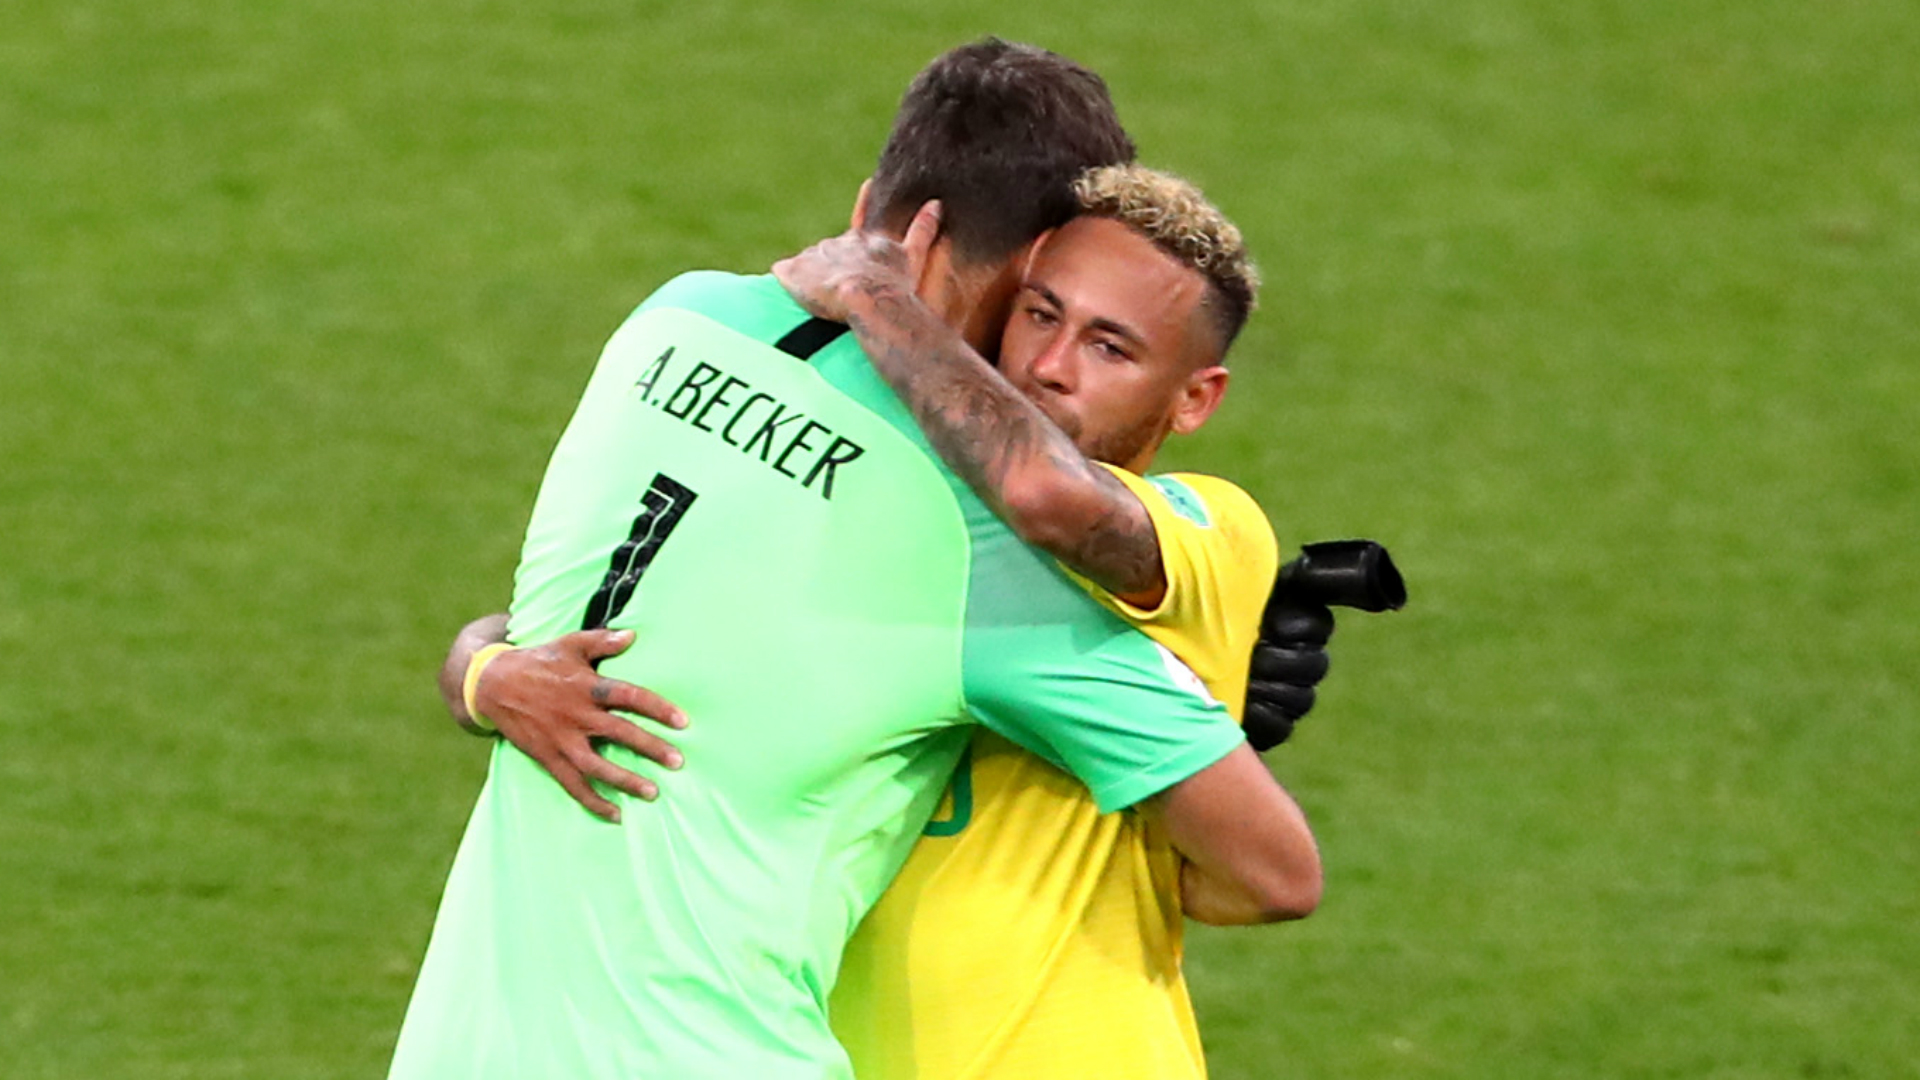 Neymar can become world's best on any team - Alisson